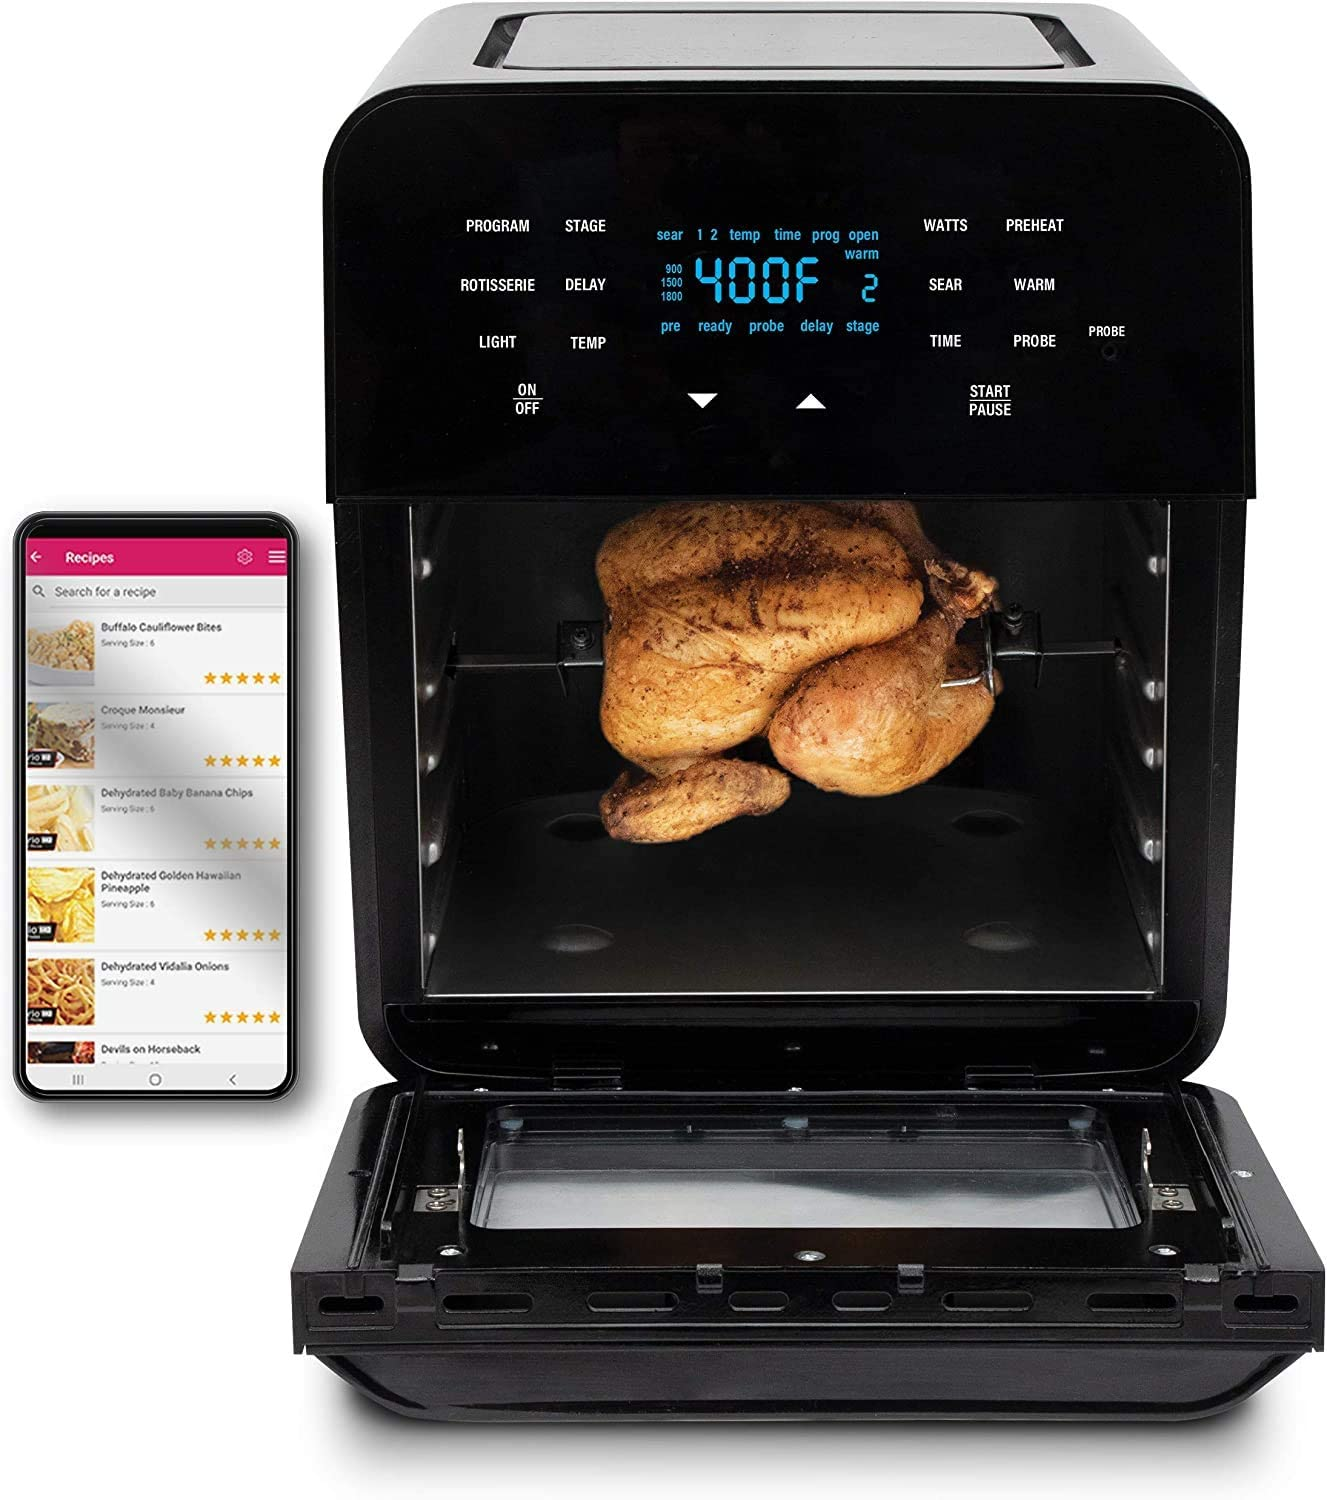 Best Seller Air Fryer with rotisserie - NuWave Brio